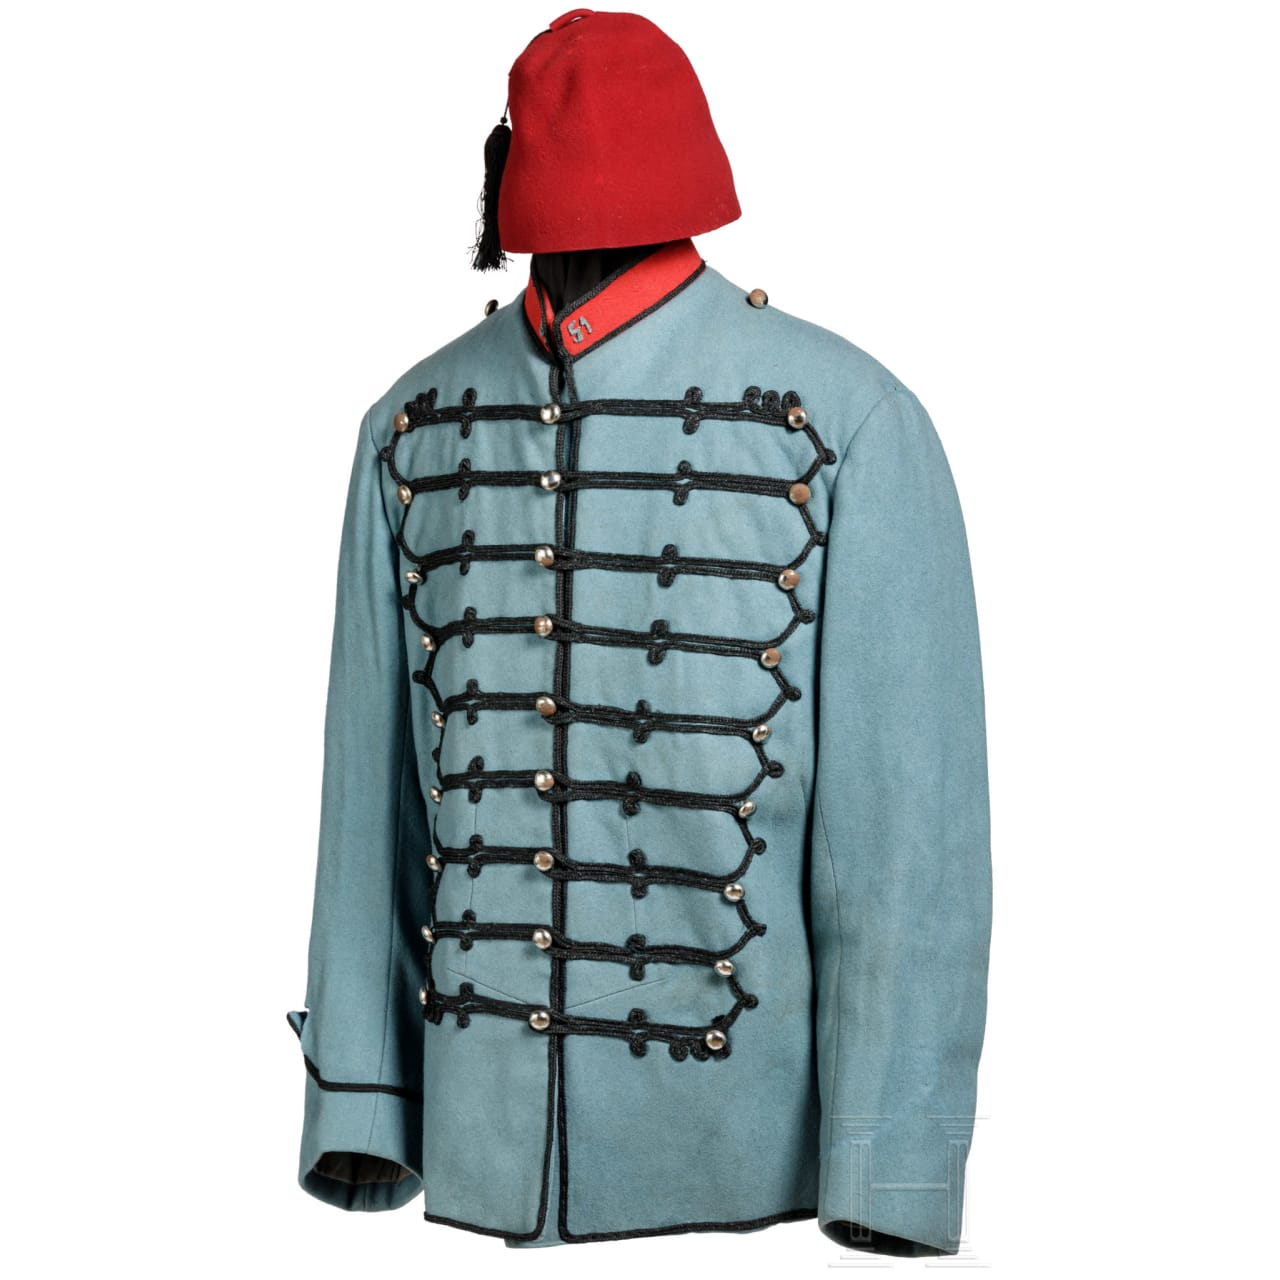 A fez and a uniform jacket of a North African colonial soldier, circa 1900